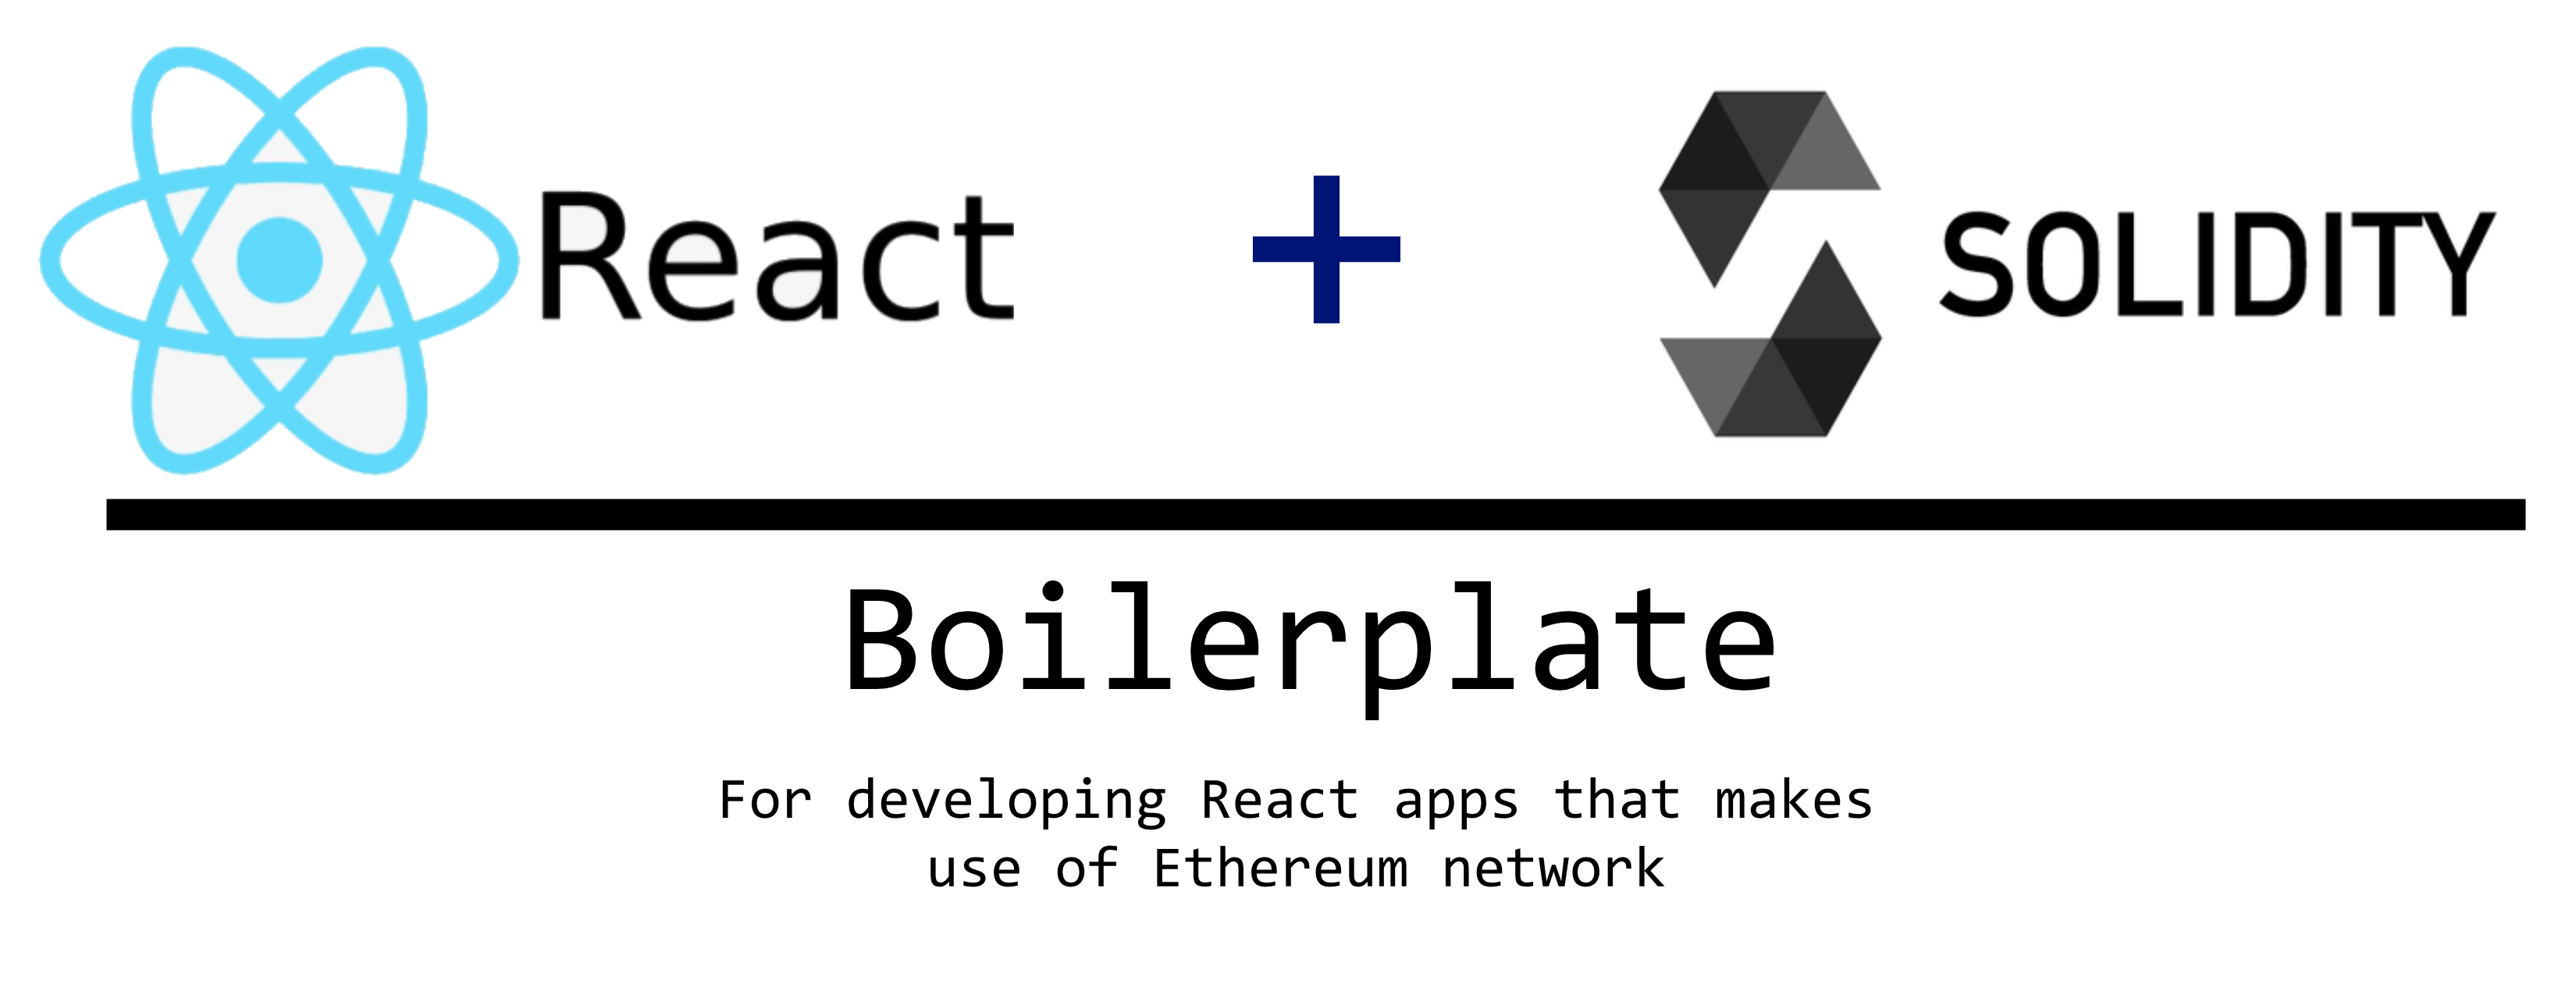 Solidity with React Boilerplate - 反应样板的坚固性